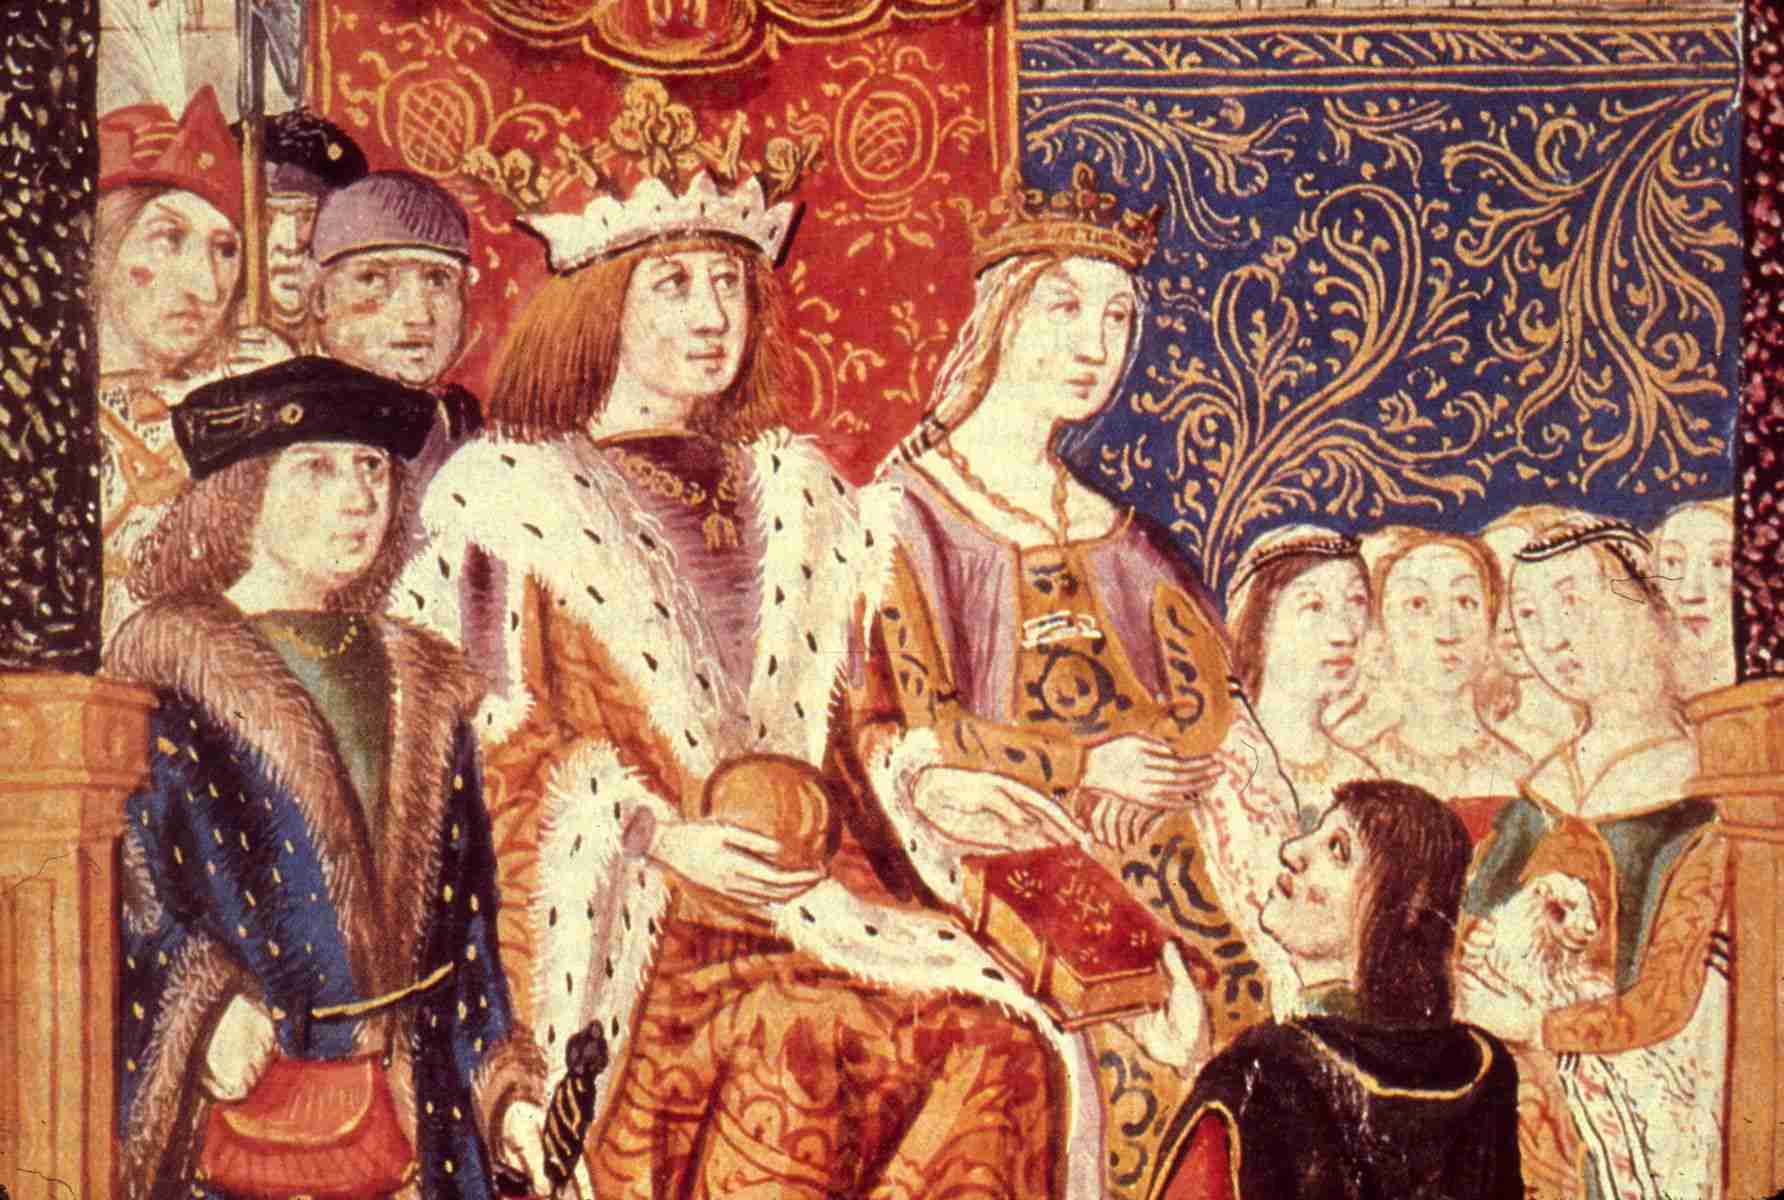 Royal monarchs of Spain Ferdinand and Isabella are depicted in 1469